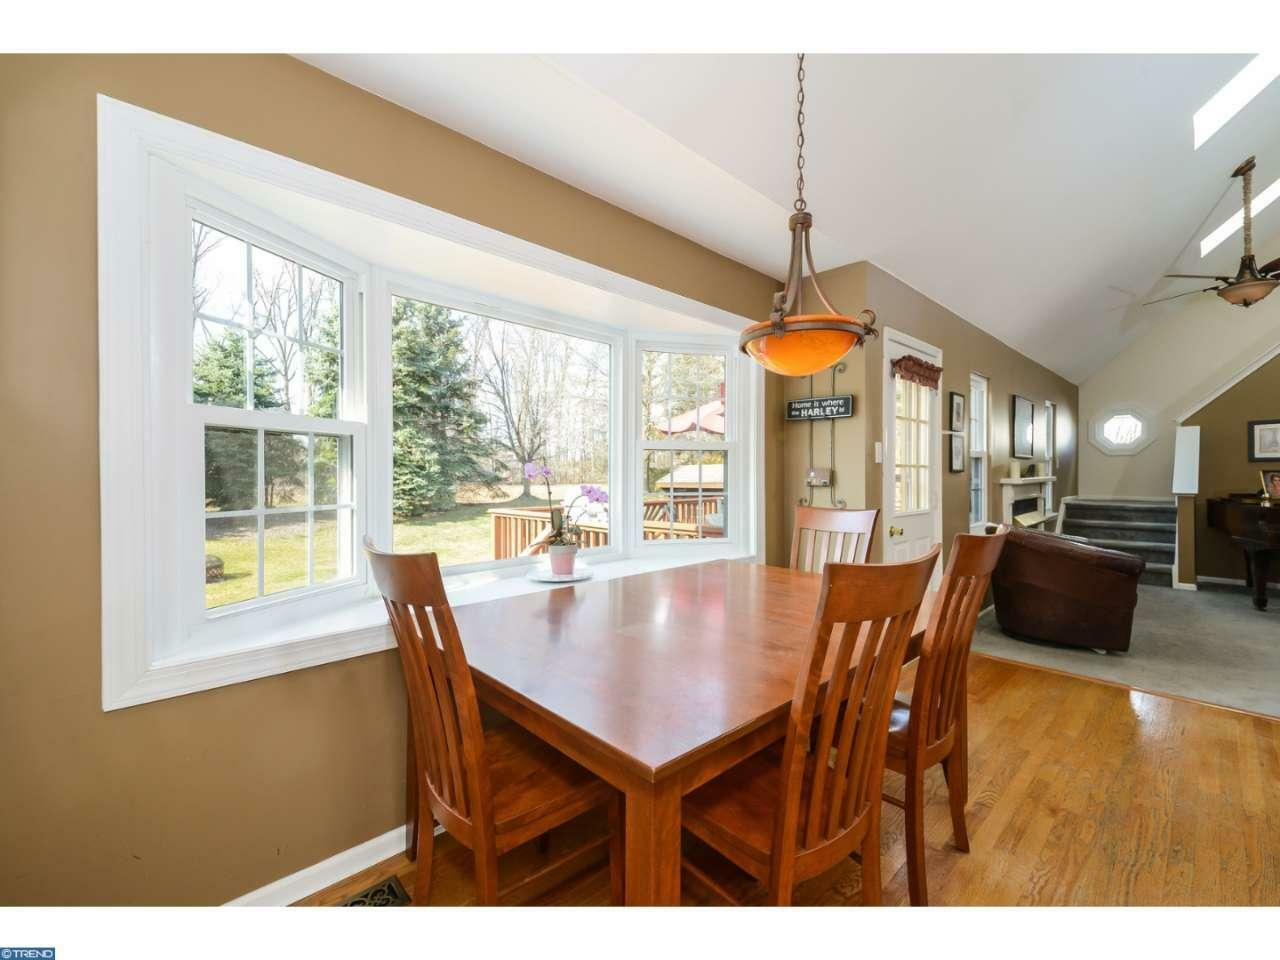 5151 Meadowbrook Pl, Pipersville, PA - USA (photo 5)